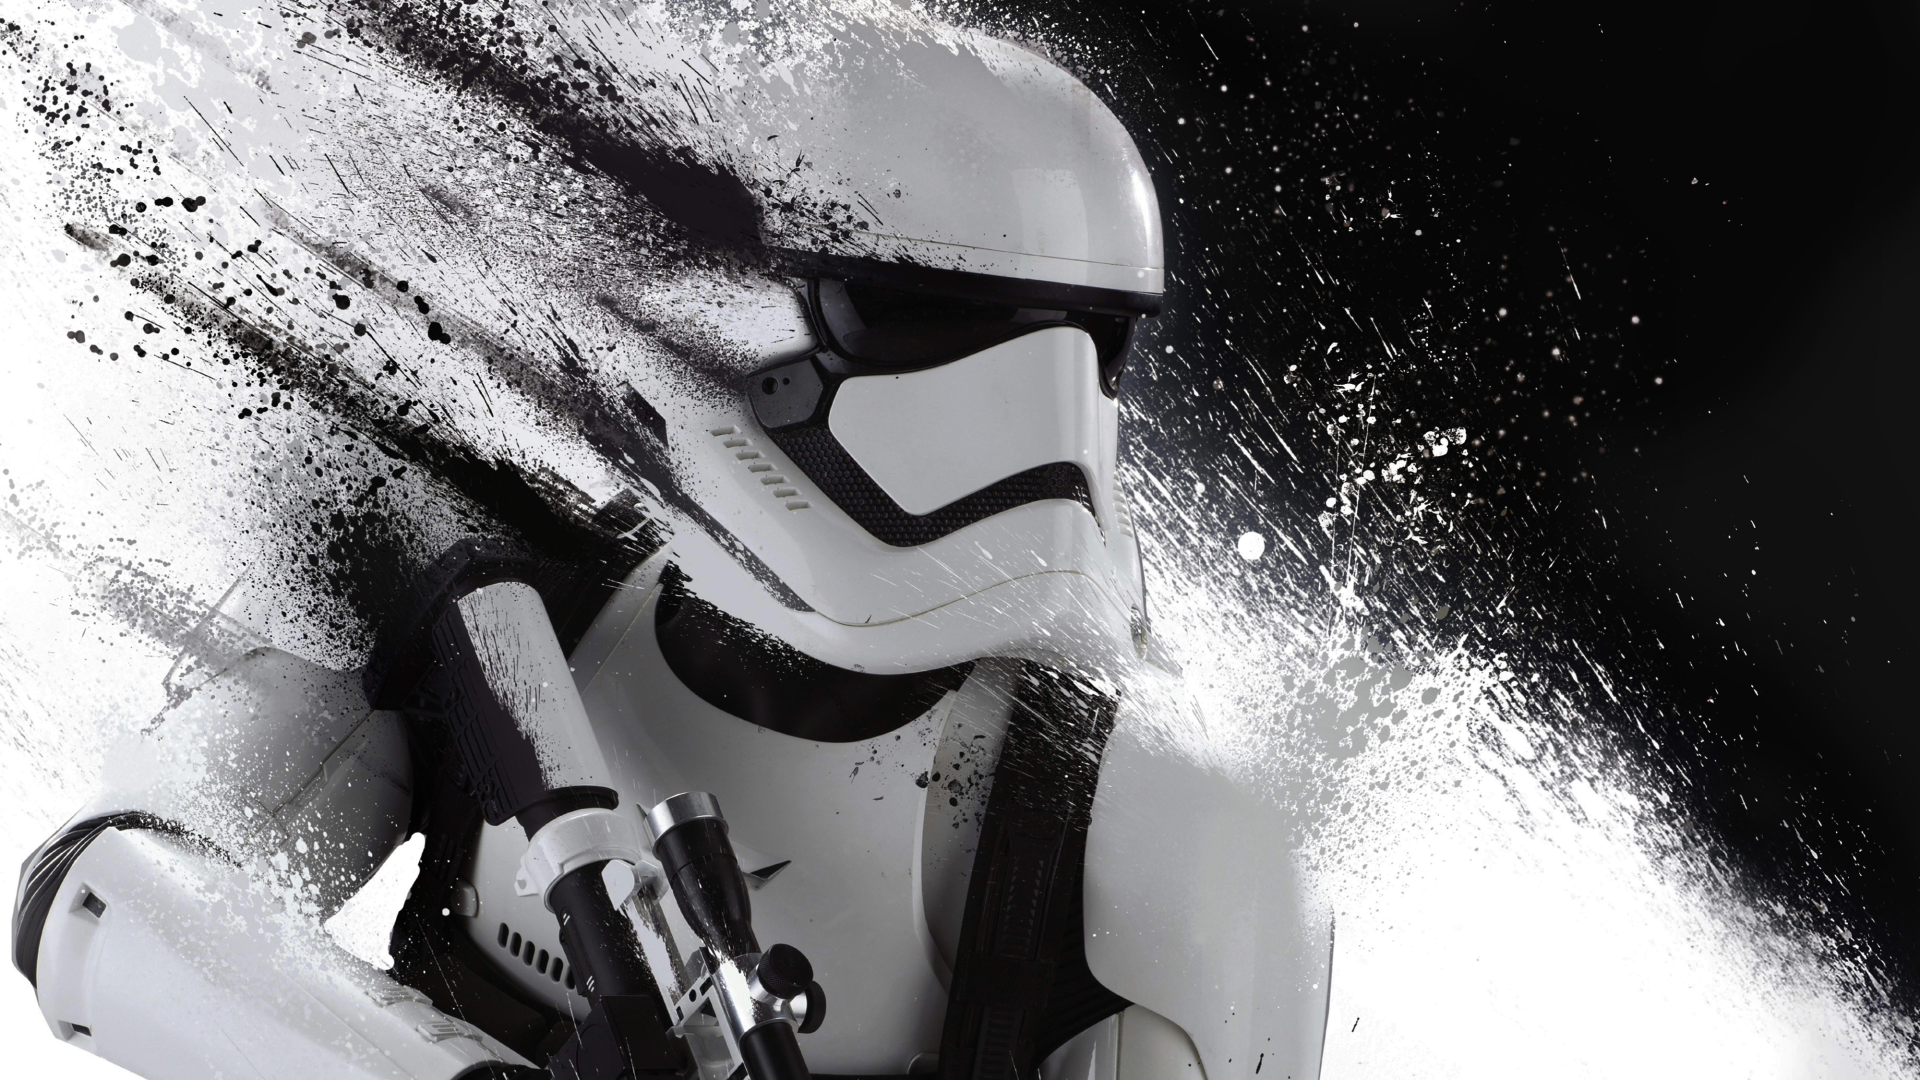 343 Stormtrooper Hd Wallpapers Background Images Wallpaper Abyss